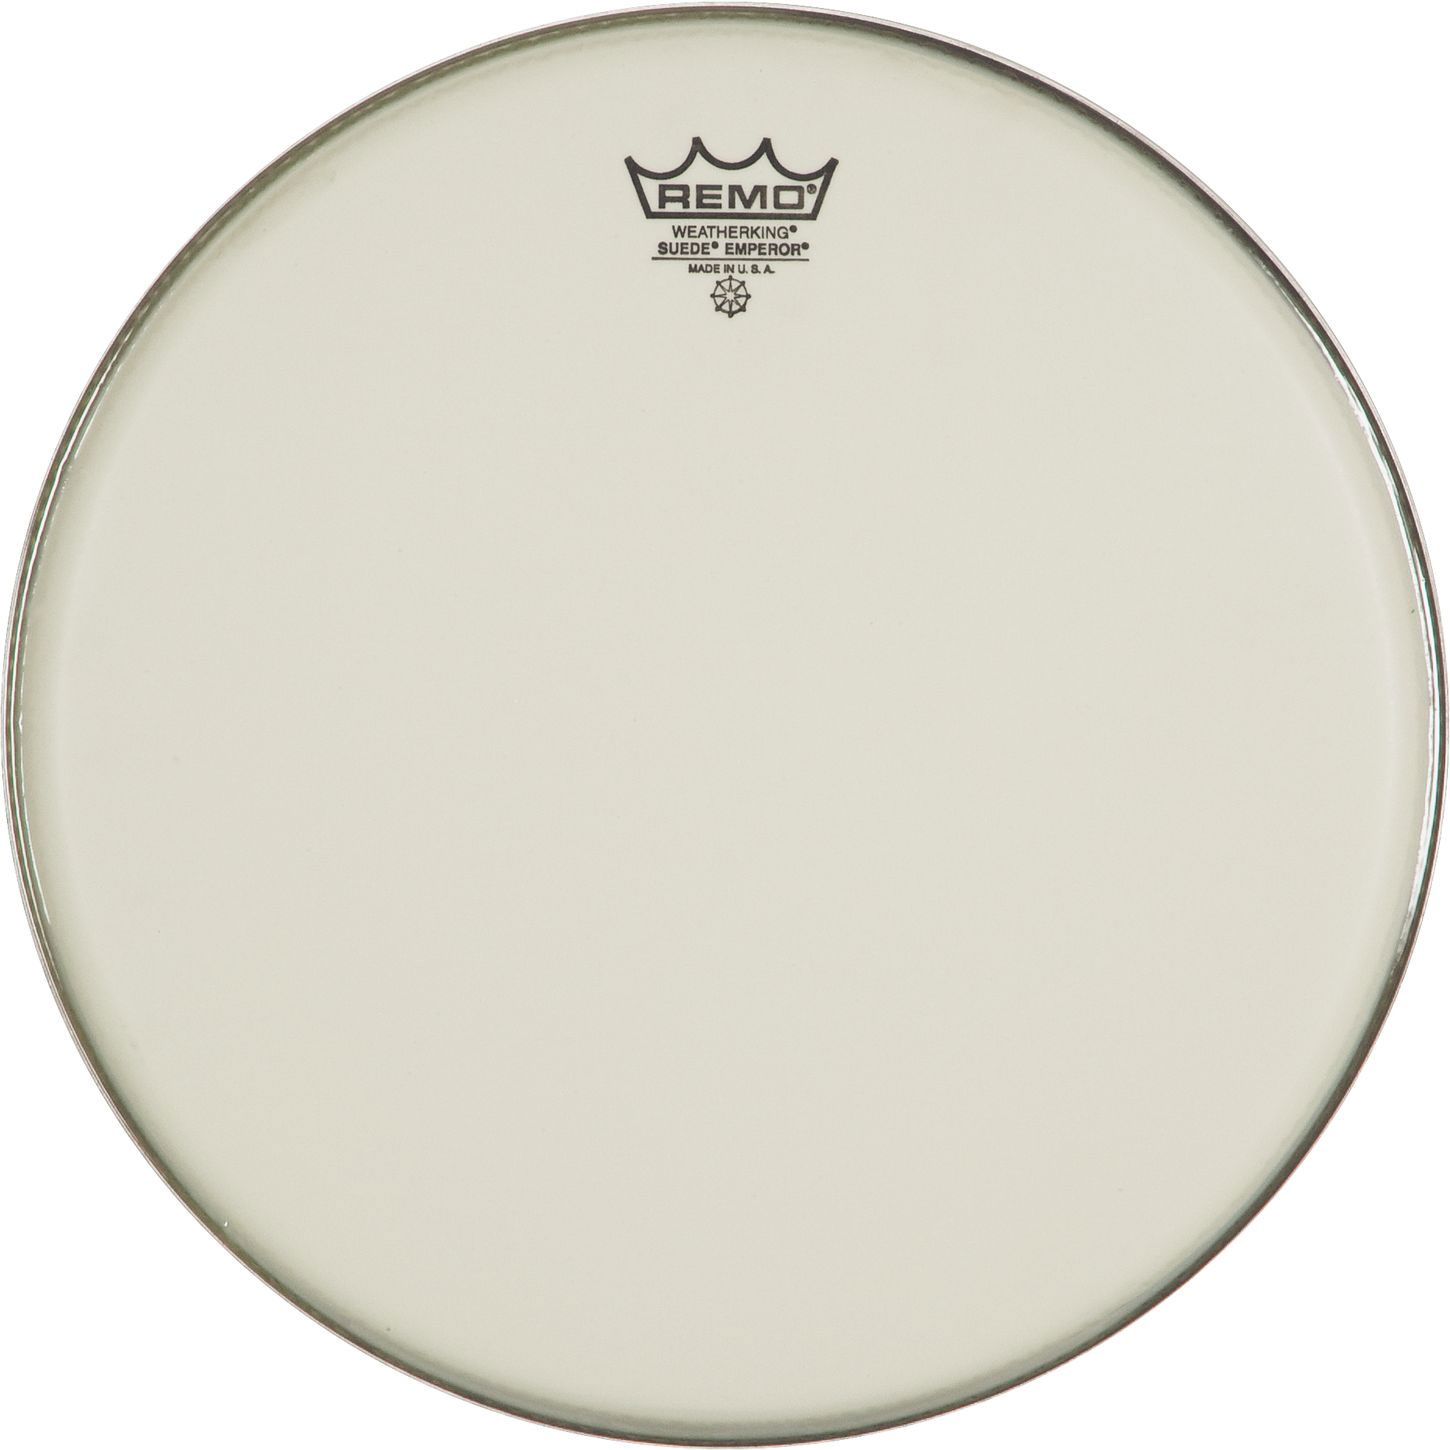 "Remo 10"" Emperor Suede Drum Head"